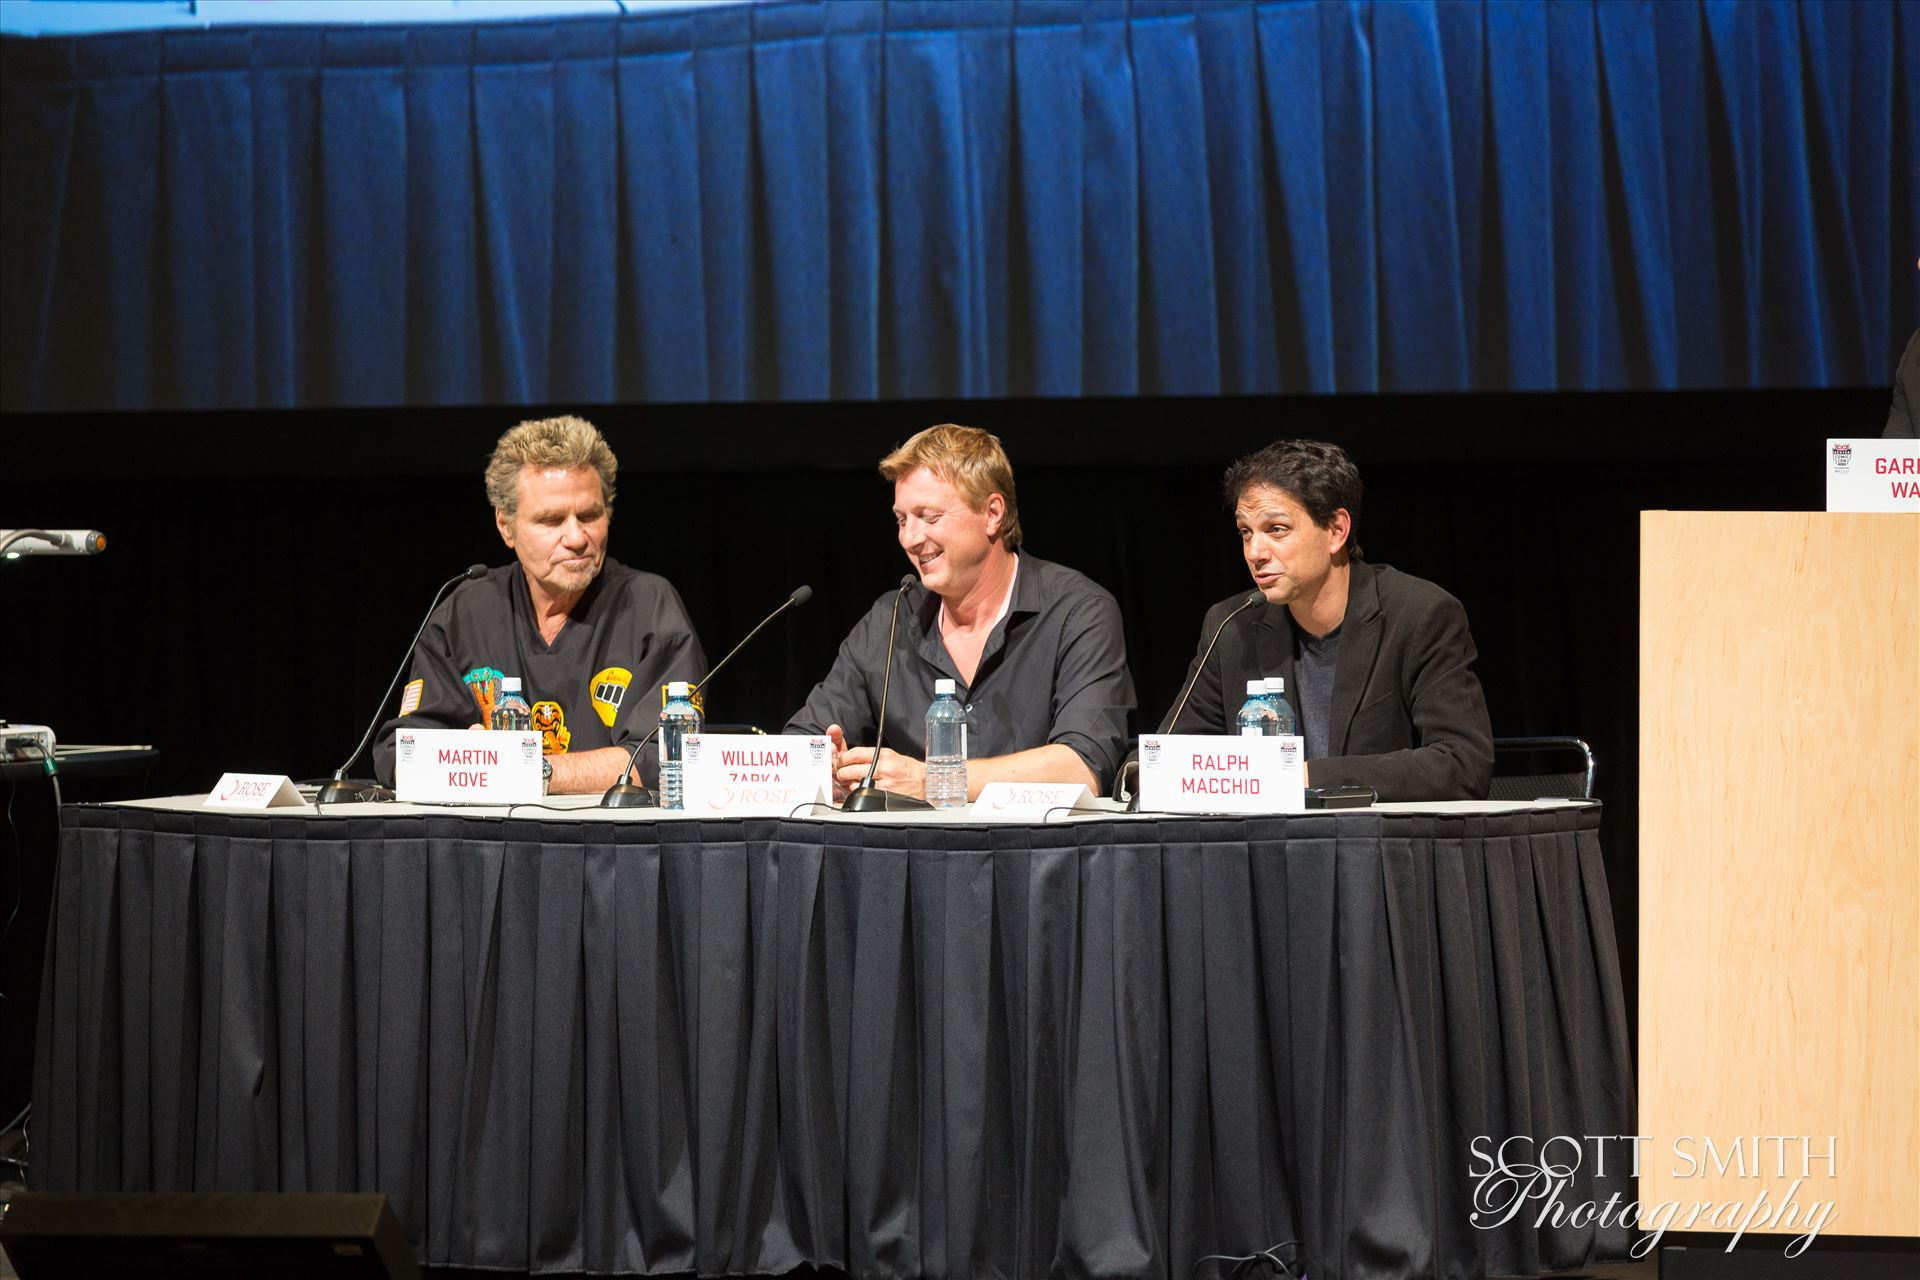 Denver Comic Con 2016 41 - Denver Comic Con 2016 at the Colorado Convention Center. Garrett Wang, Ralph Macchio, Martin Kove and William Zabka. by Scott Smith Photos